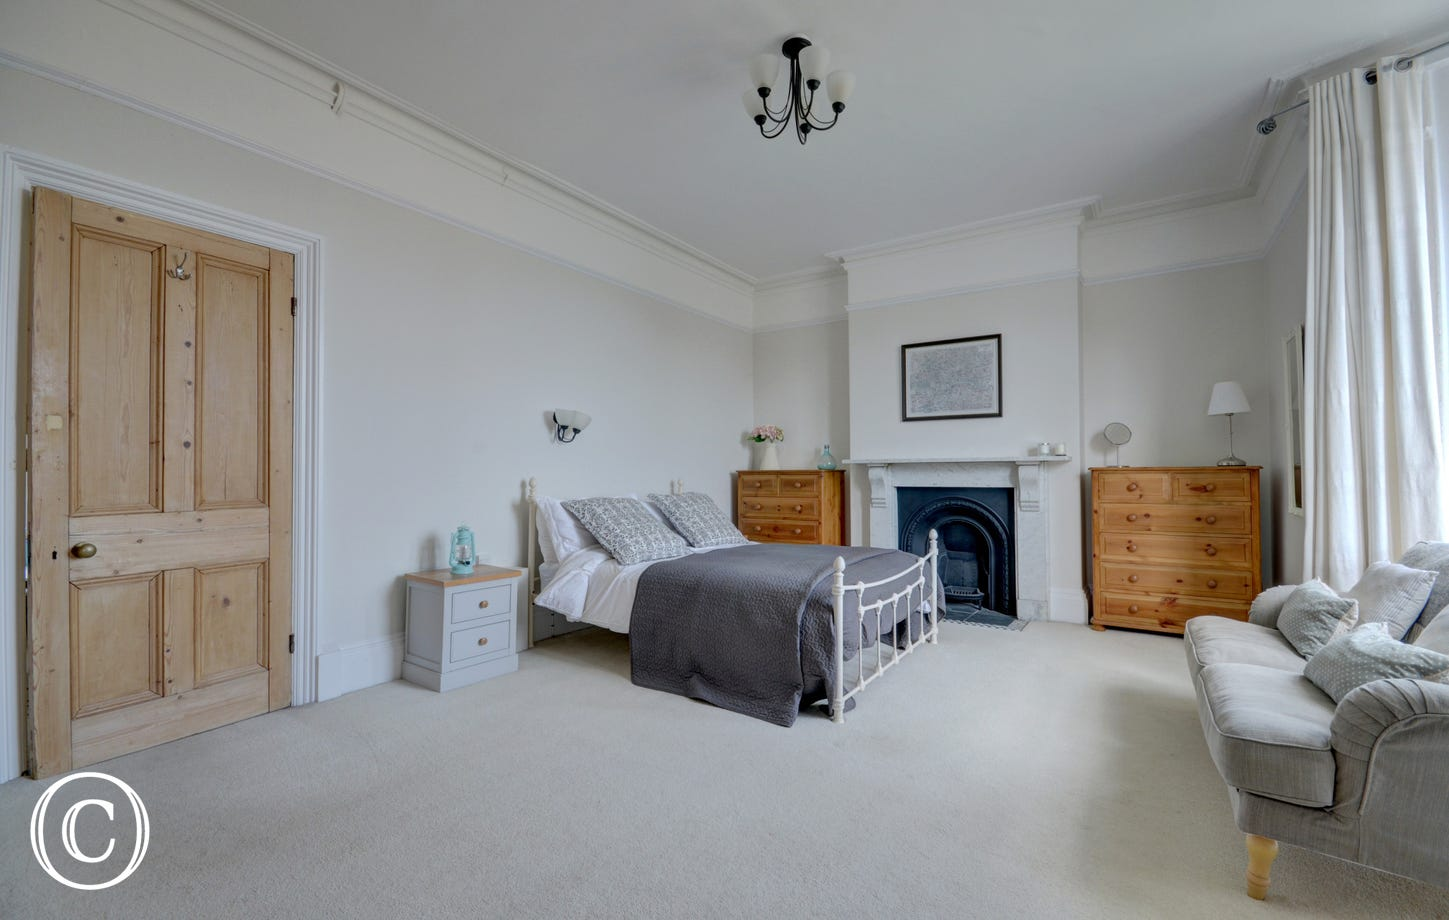 The spacious master king bedded room can be found on the first floor, with sofa in a large bay window and distant sea views across the burrows